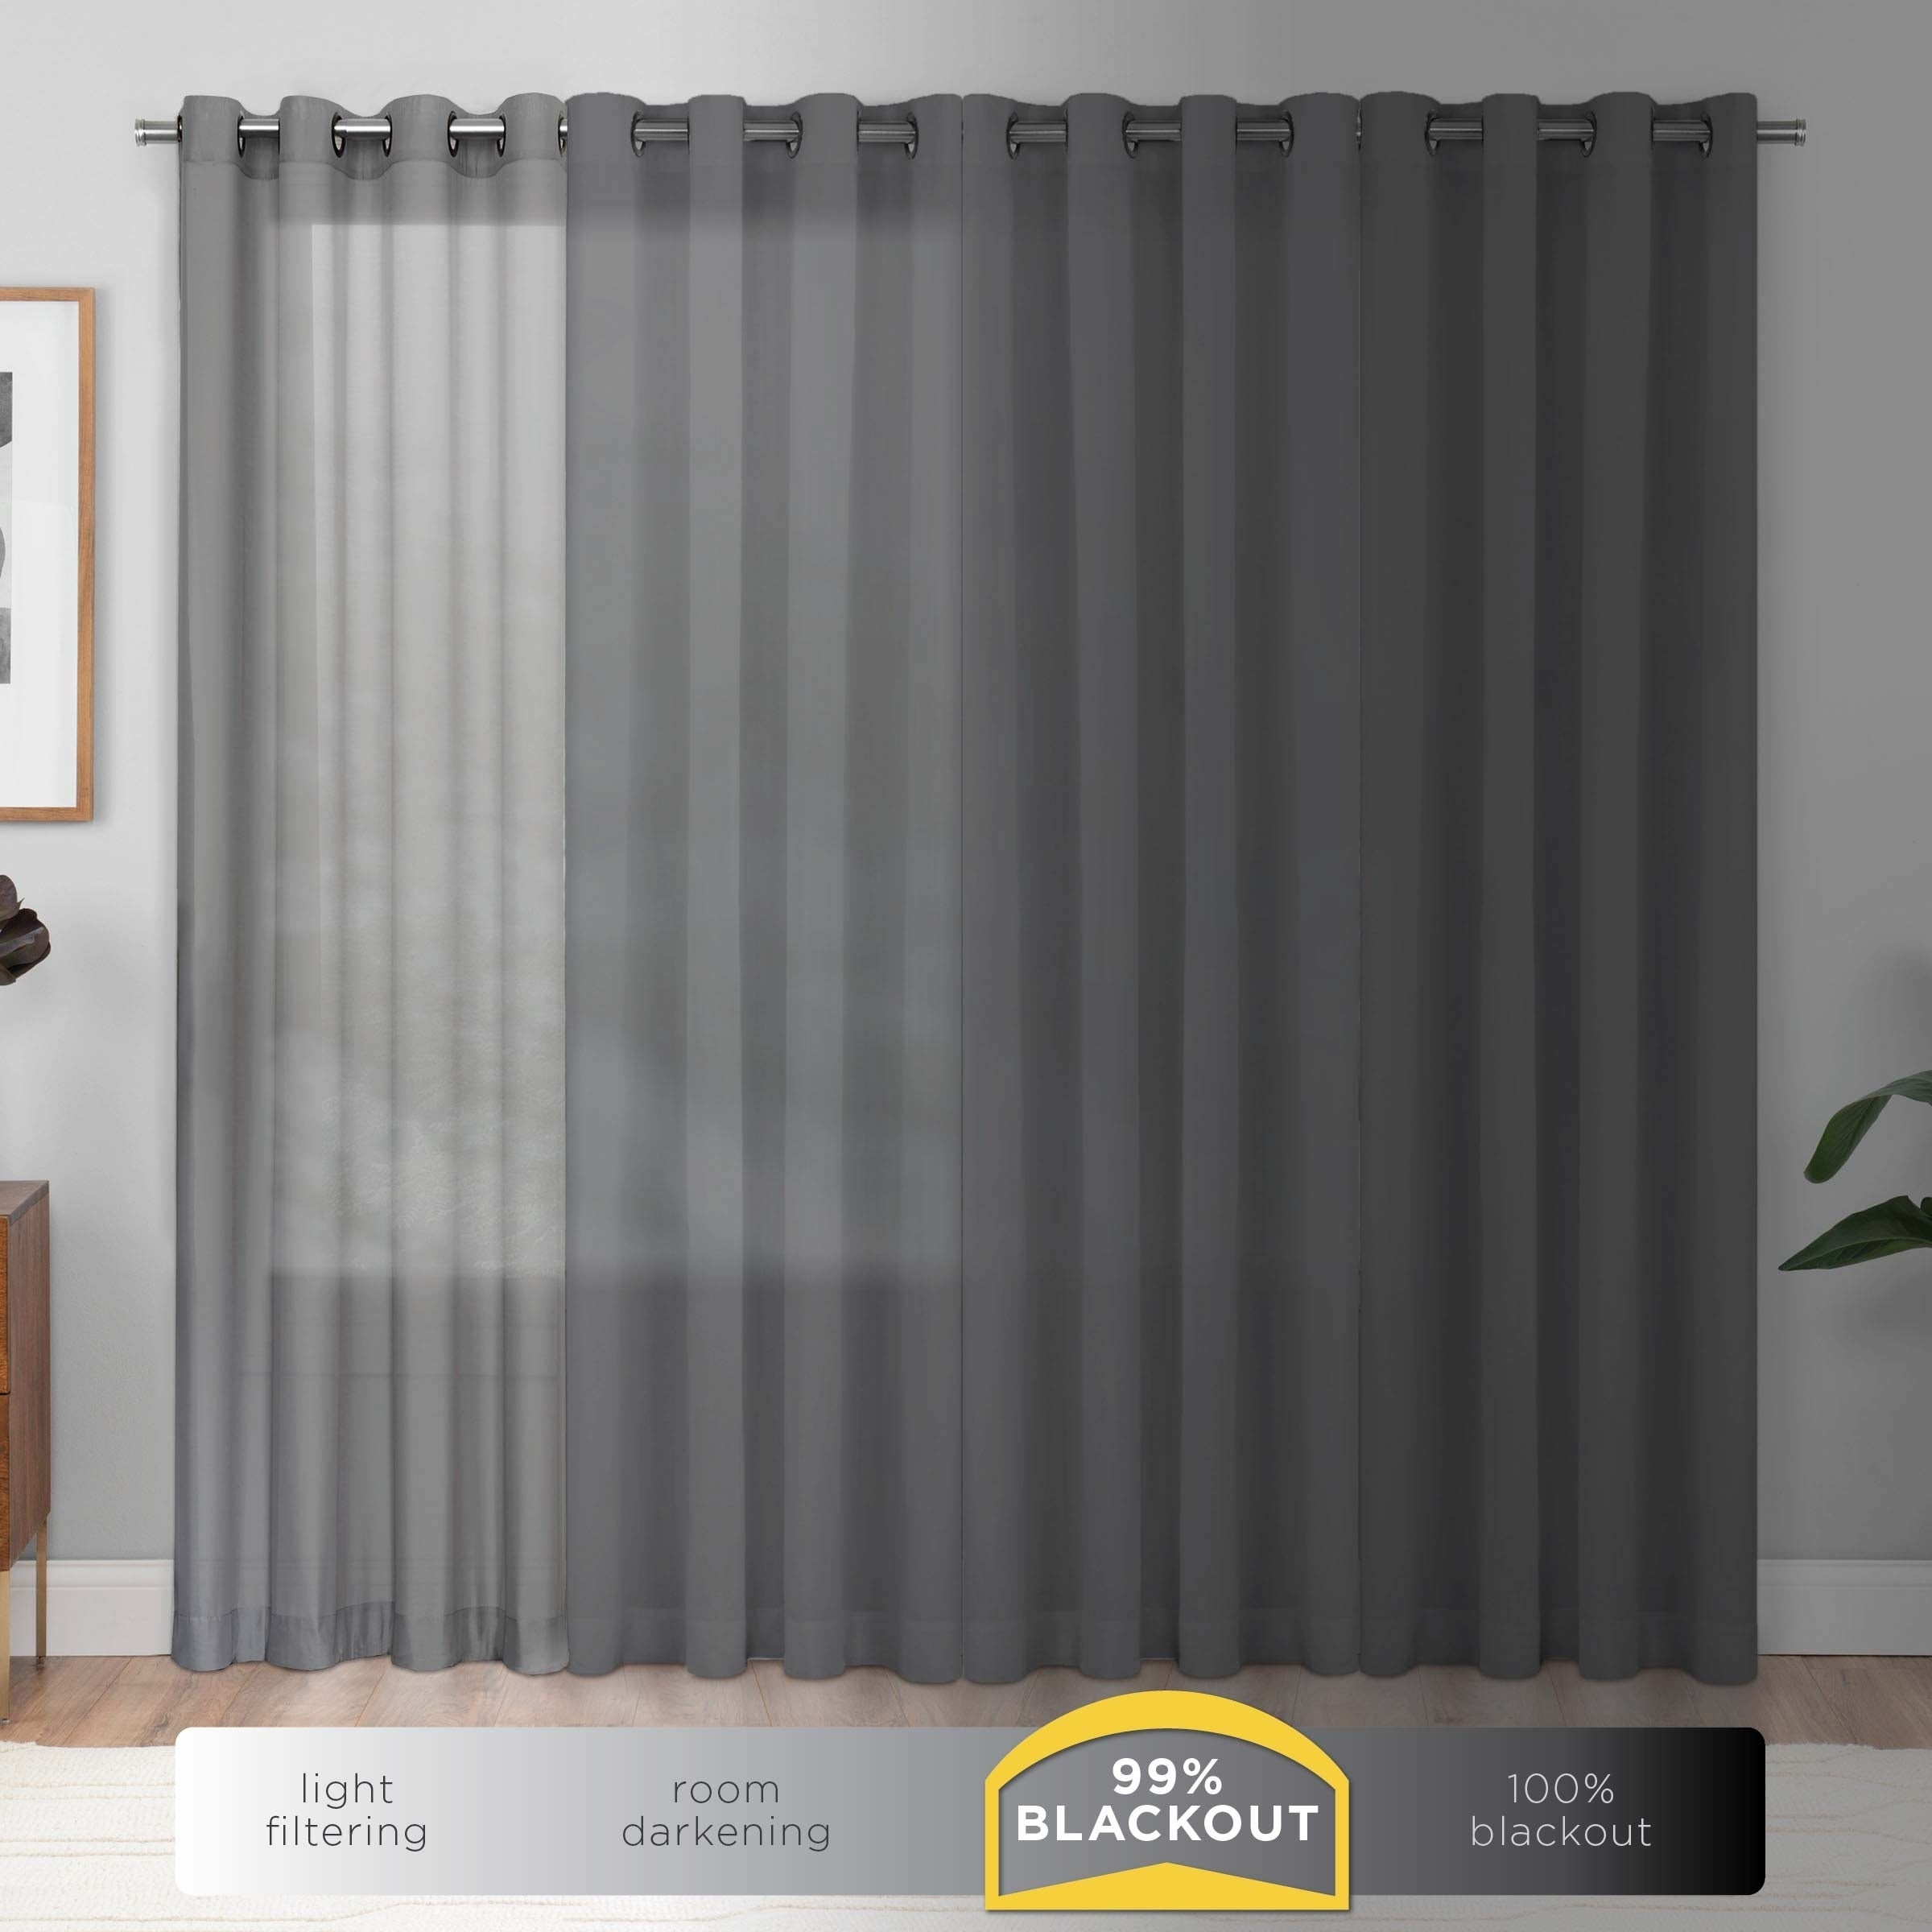 Eclipse Kendall Blackout Window Curtain Panel With Eclipse Kendall Blackout Window Curtain Panels (View 11 of 20)